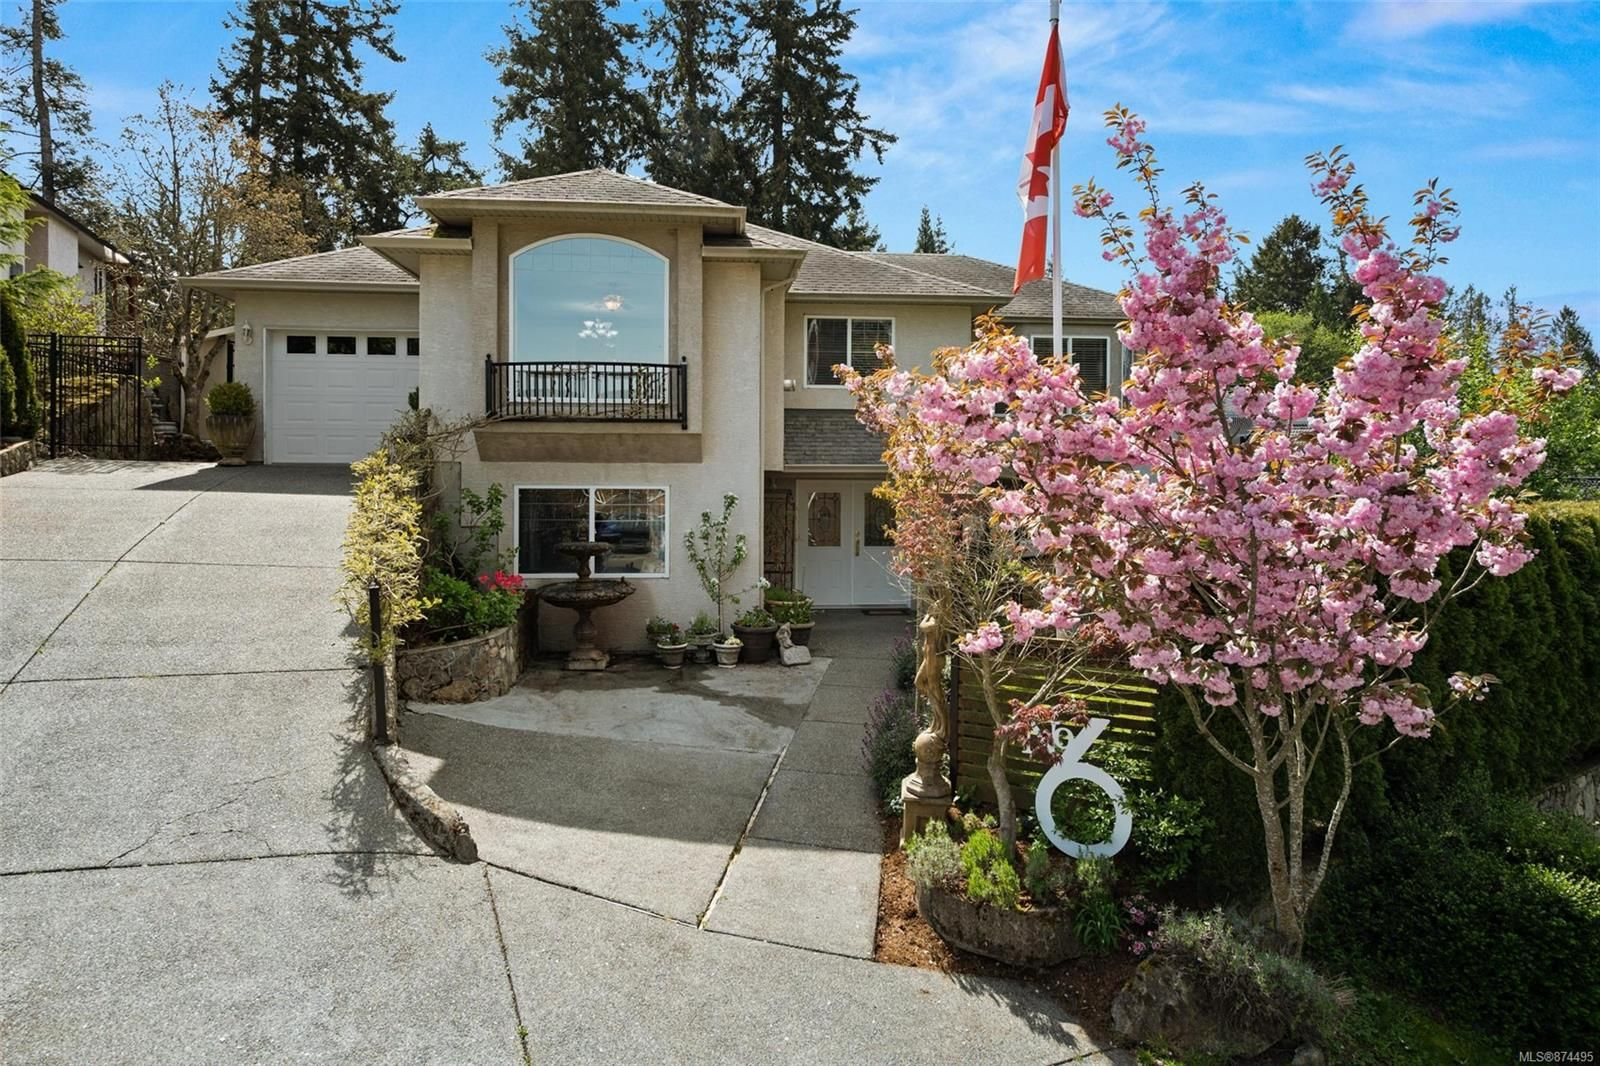 Main Photo: 6 pearce Pl in : VR Six Mile House for sale (View Royal)  : MLS®# 874495